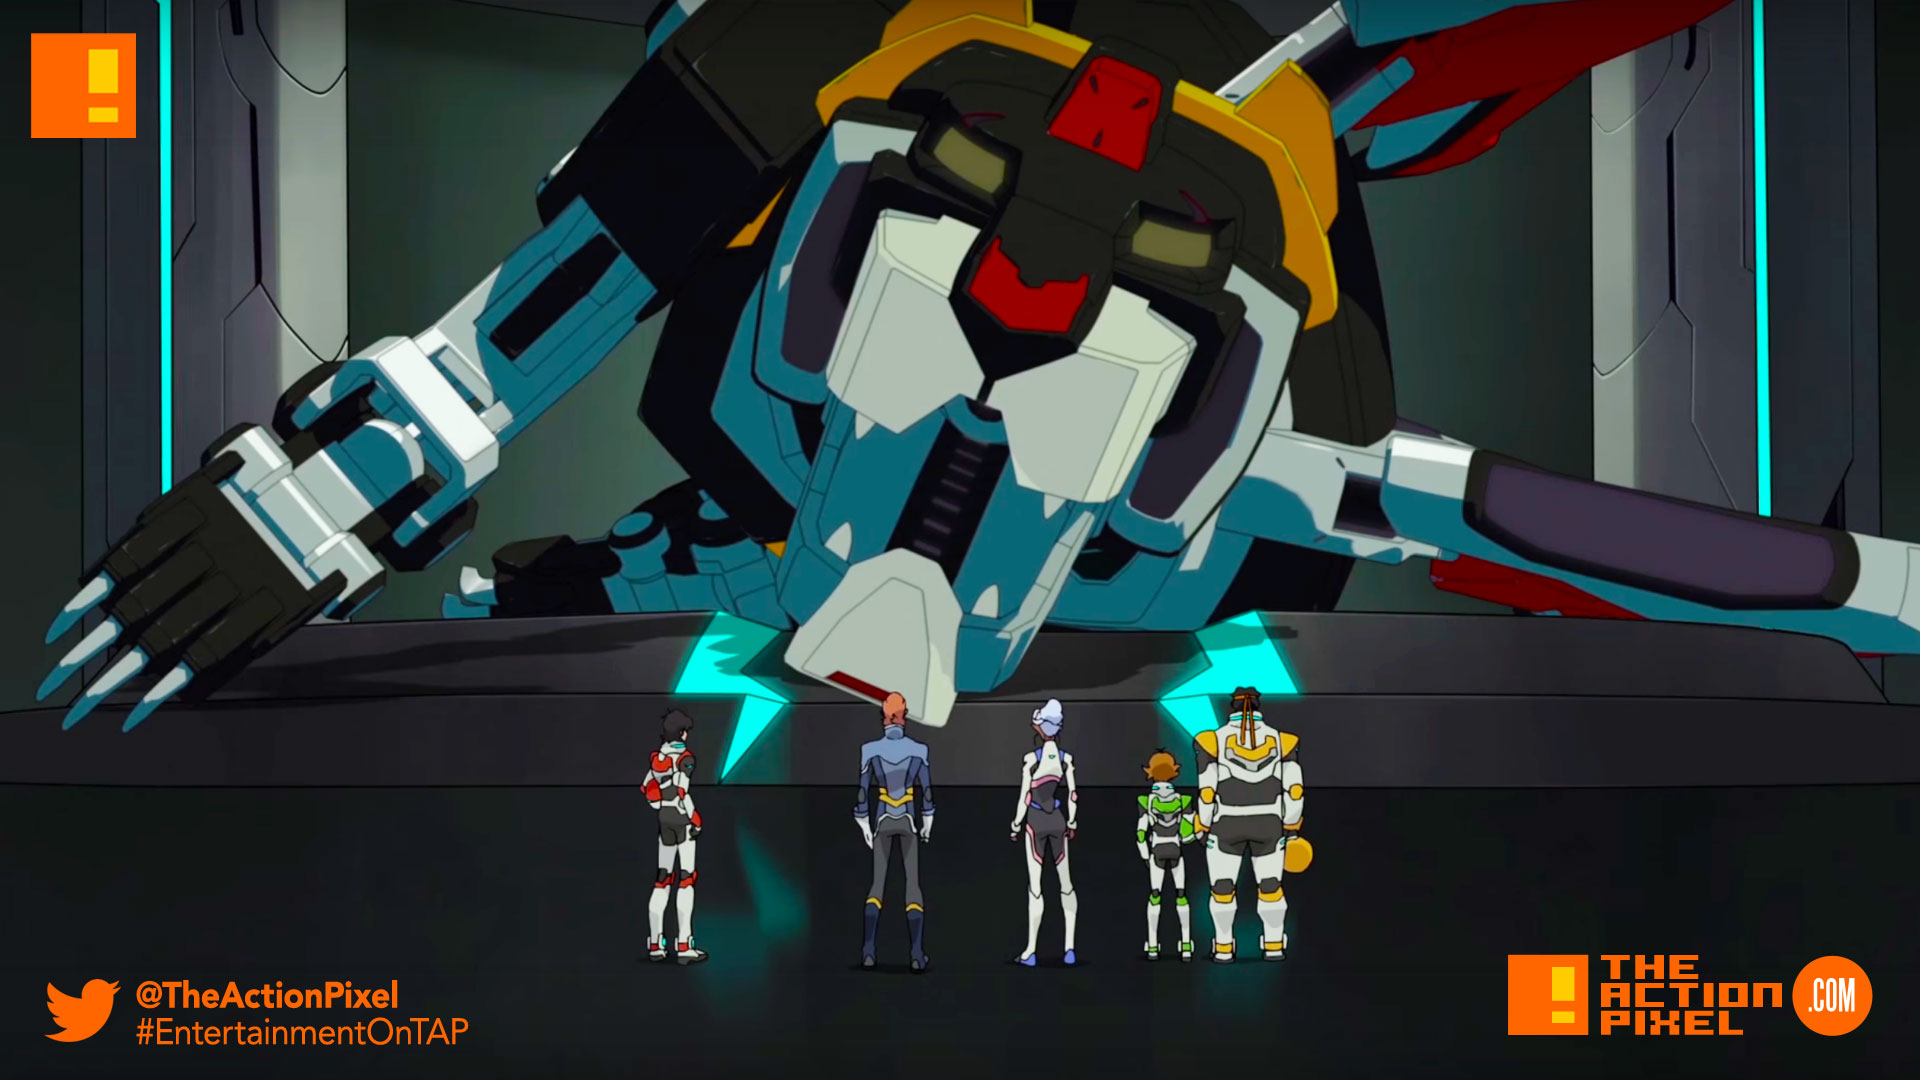 voltron, season 3, the action pixel, entertainment on tap,season 3,dreamworks animation,dreamworks